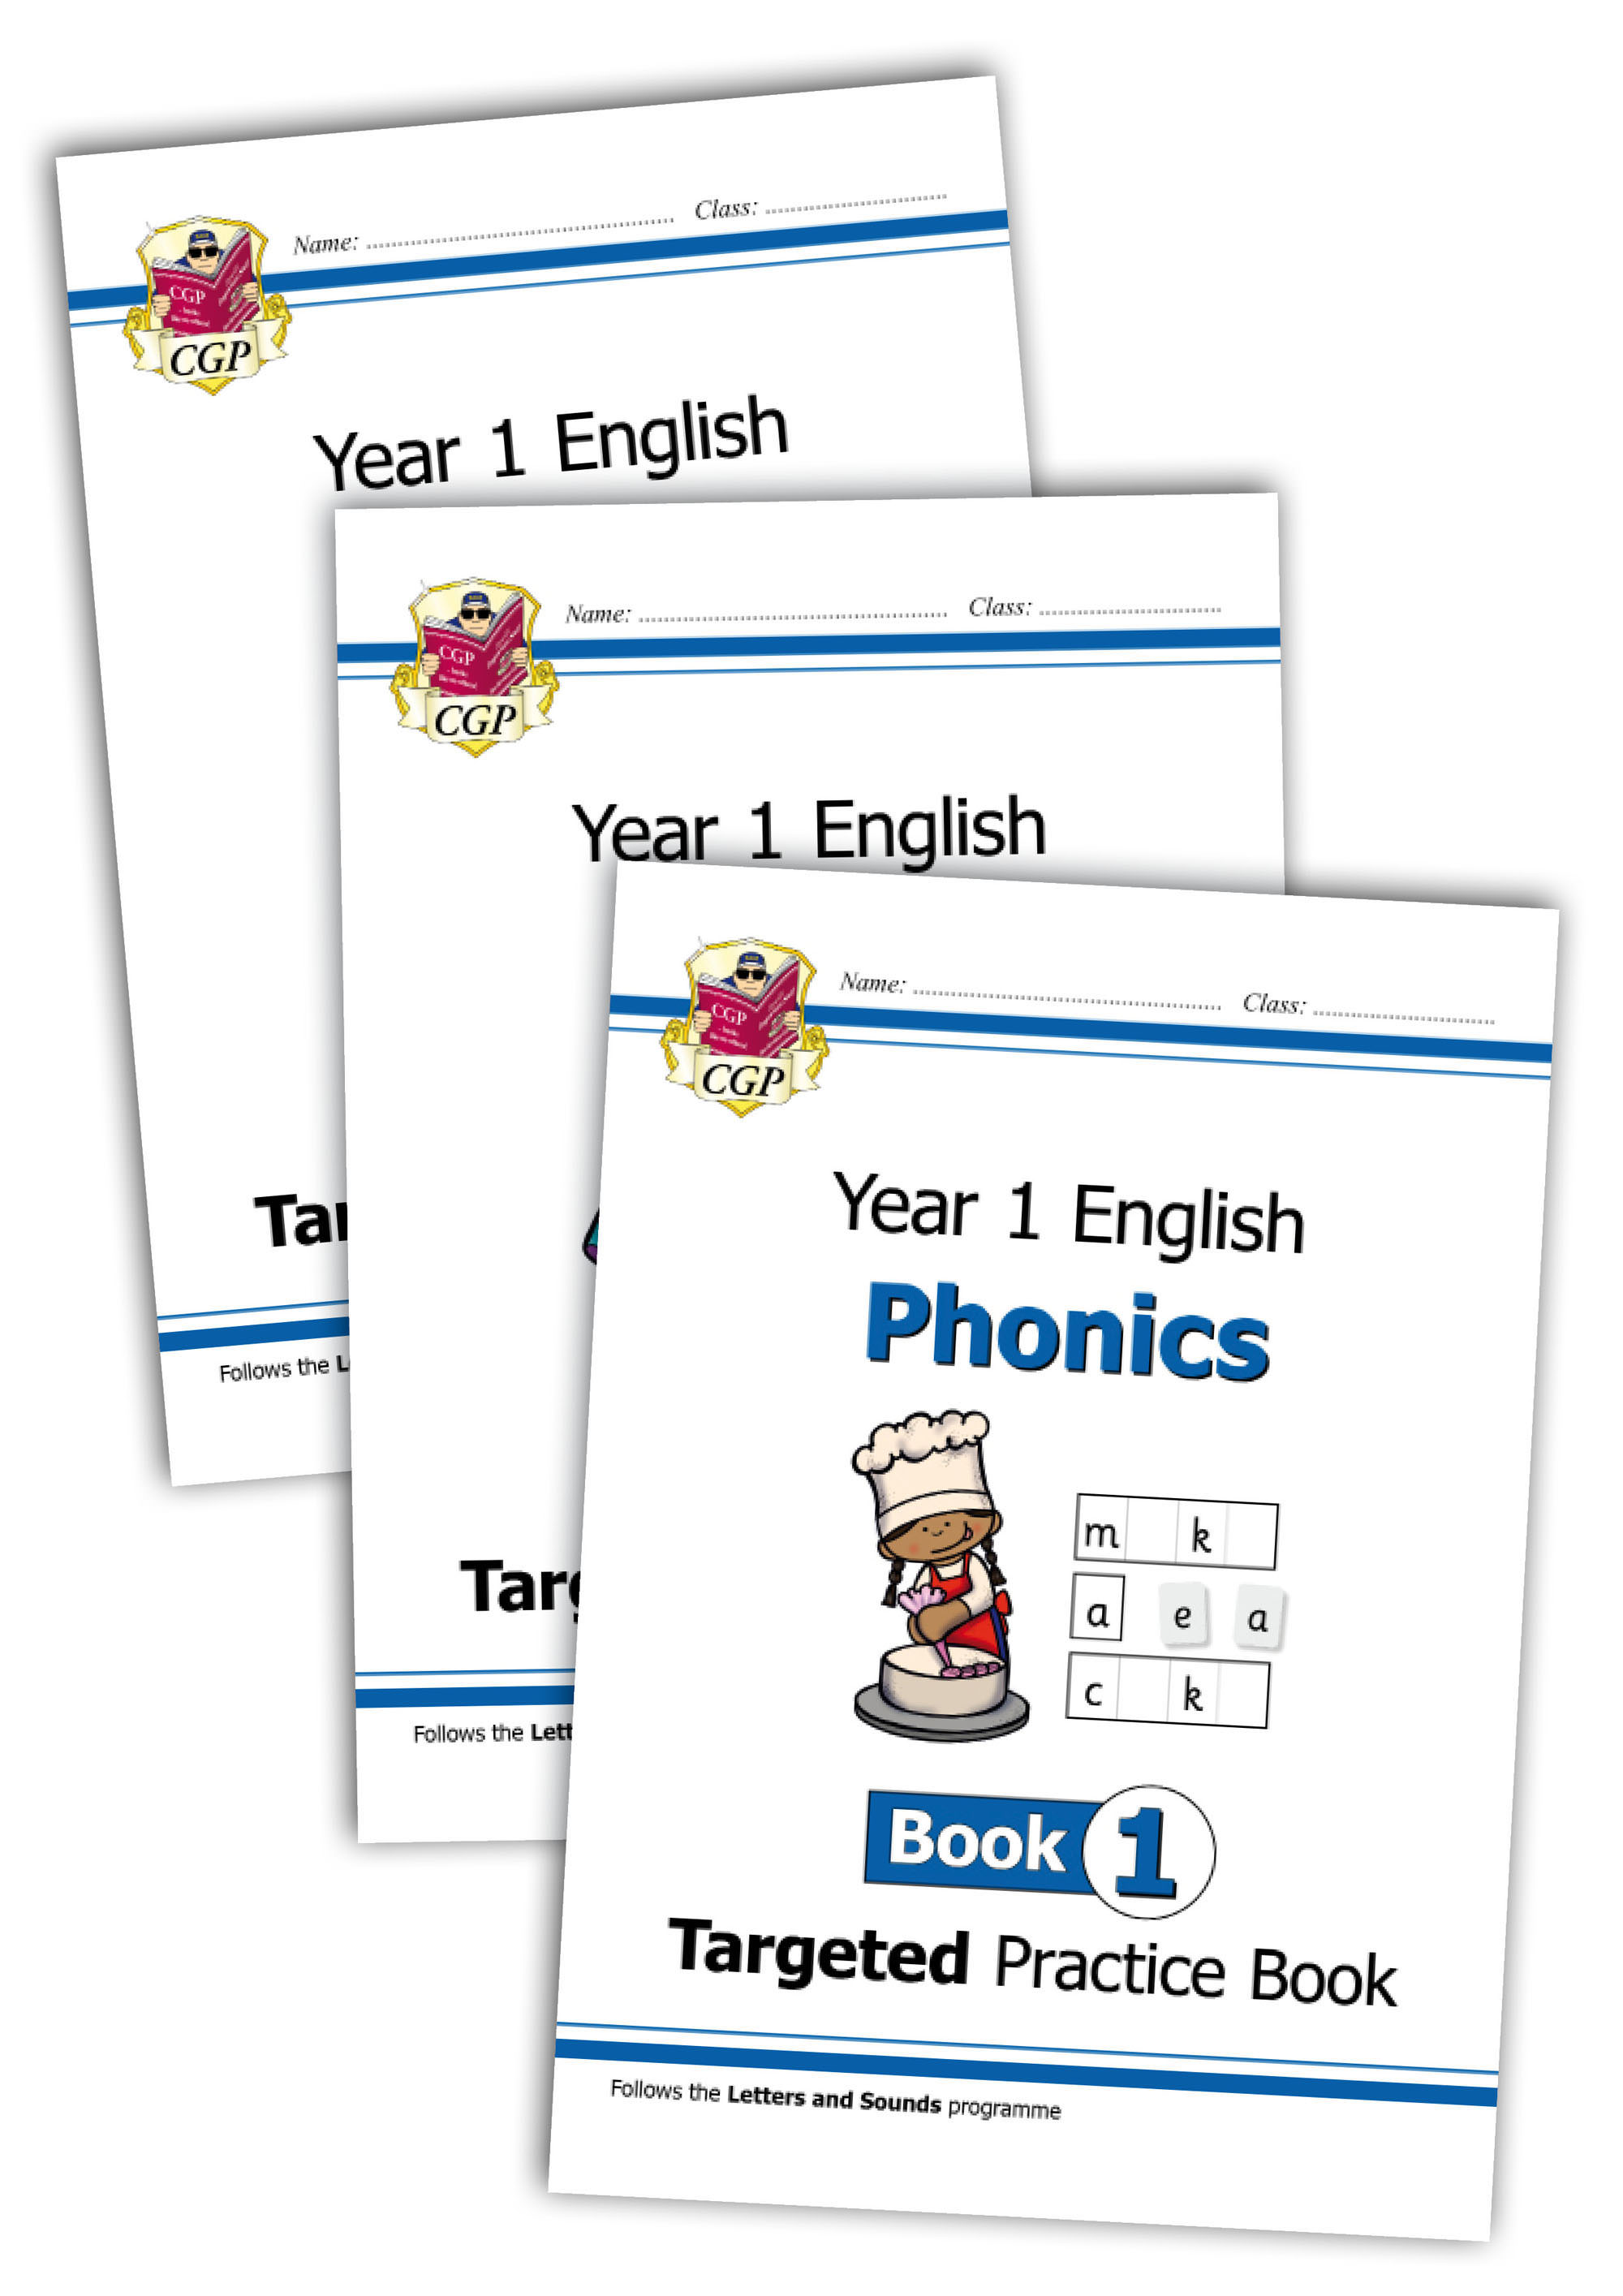 E1OWB11 - KS1 English Targeted Practice Book Bundle: Phonics - Year 1 Books 1-3